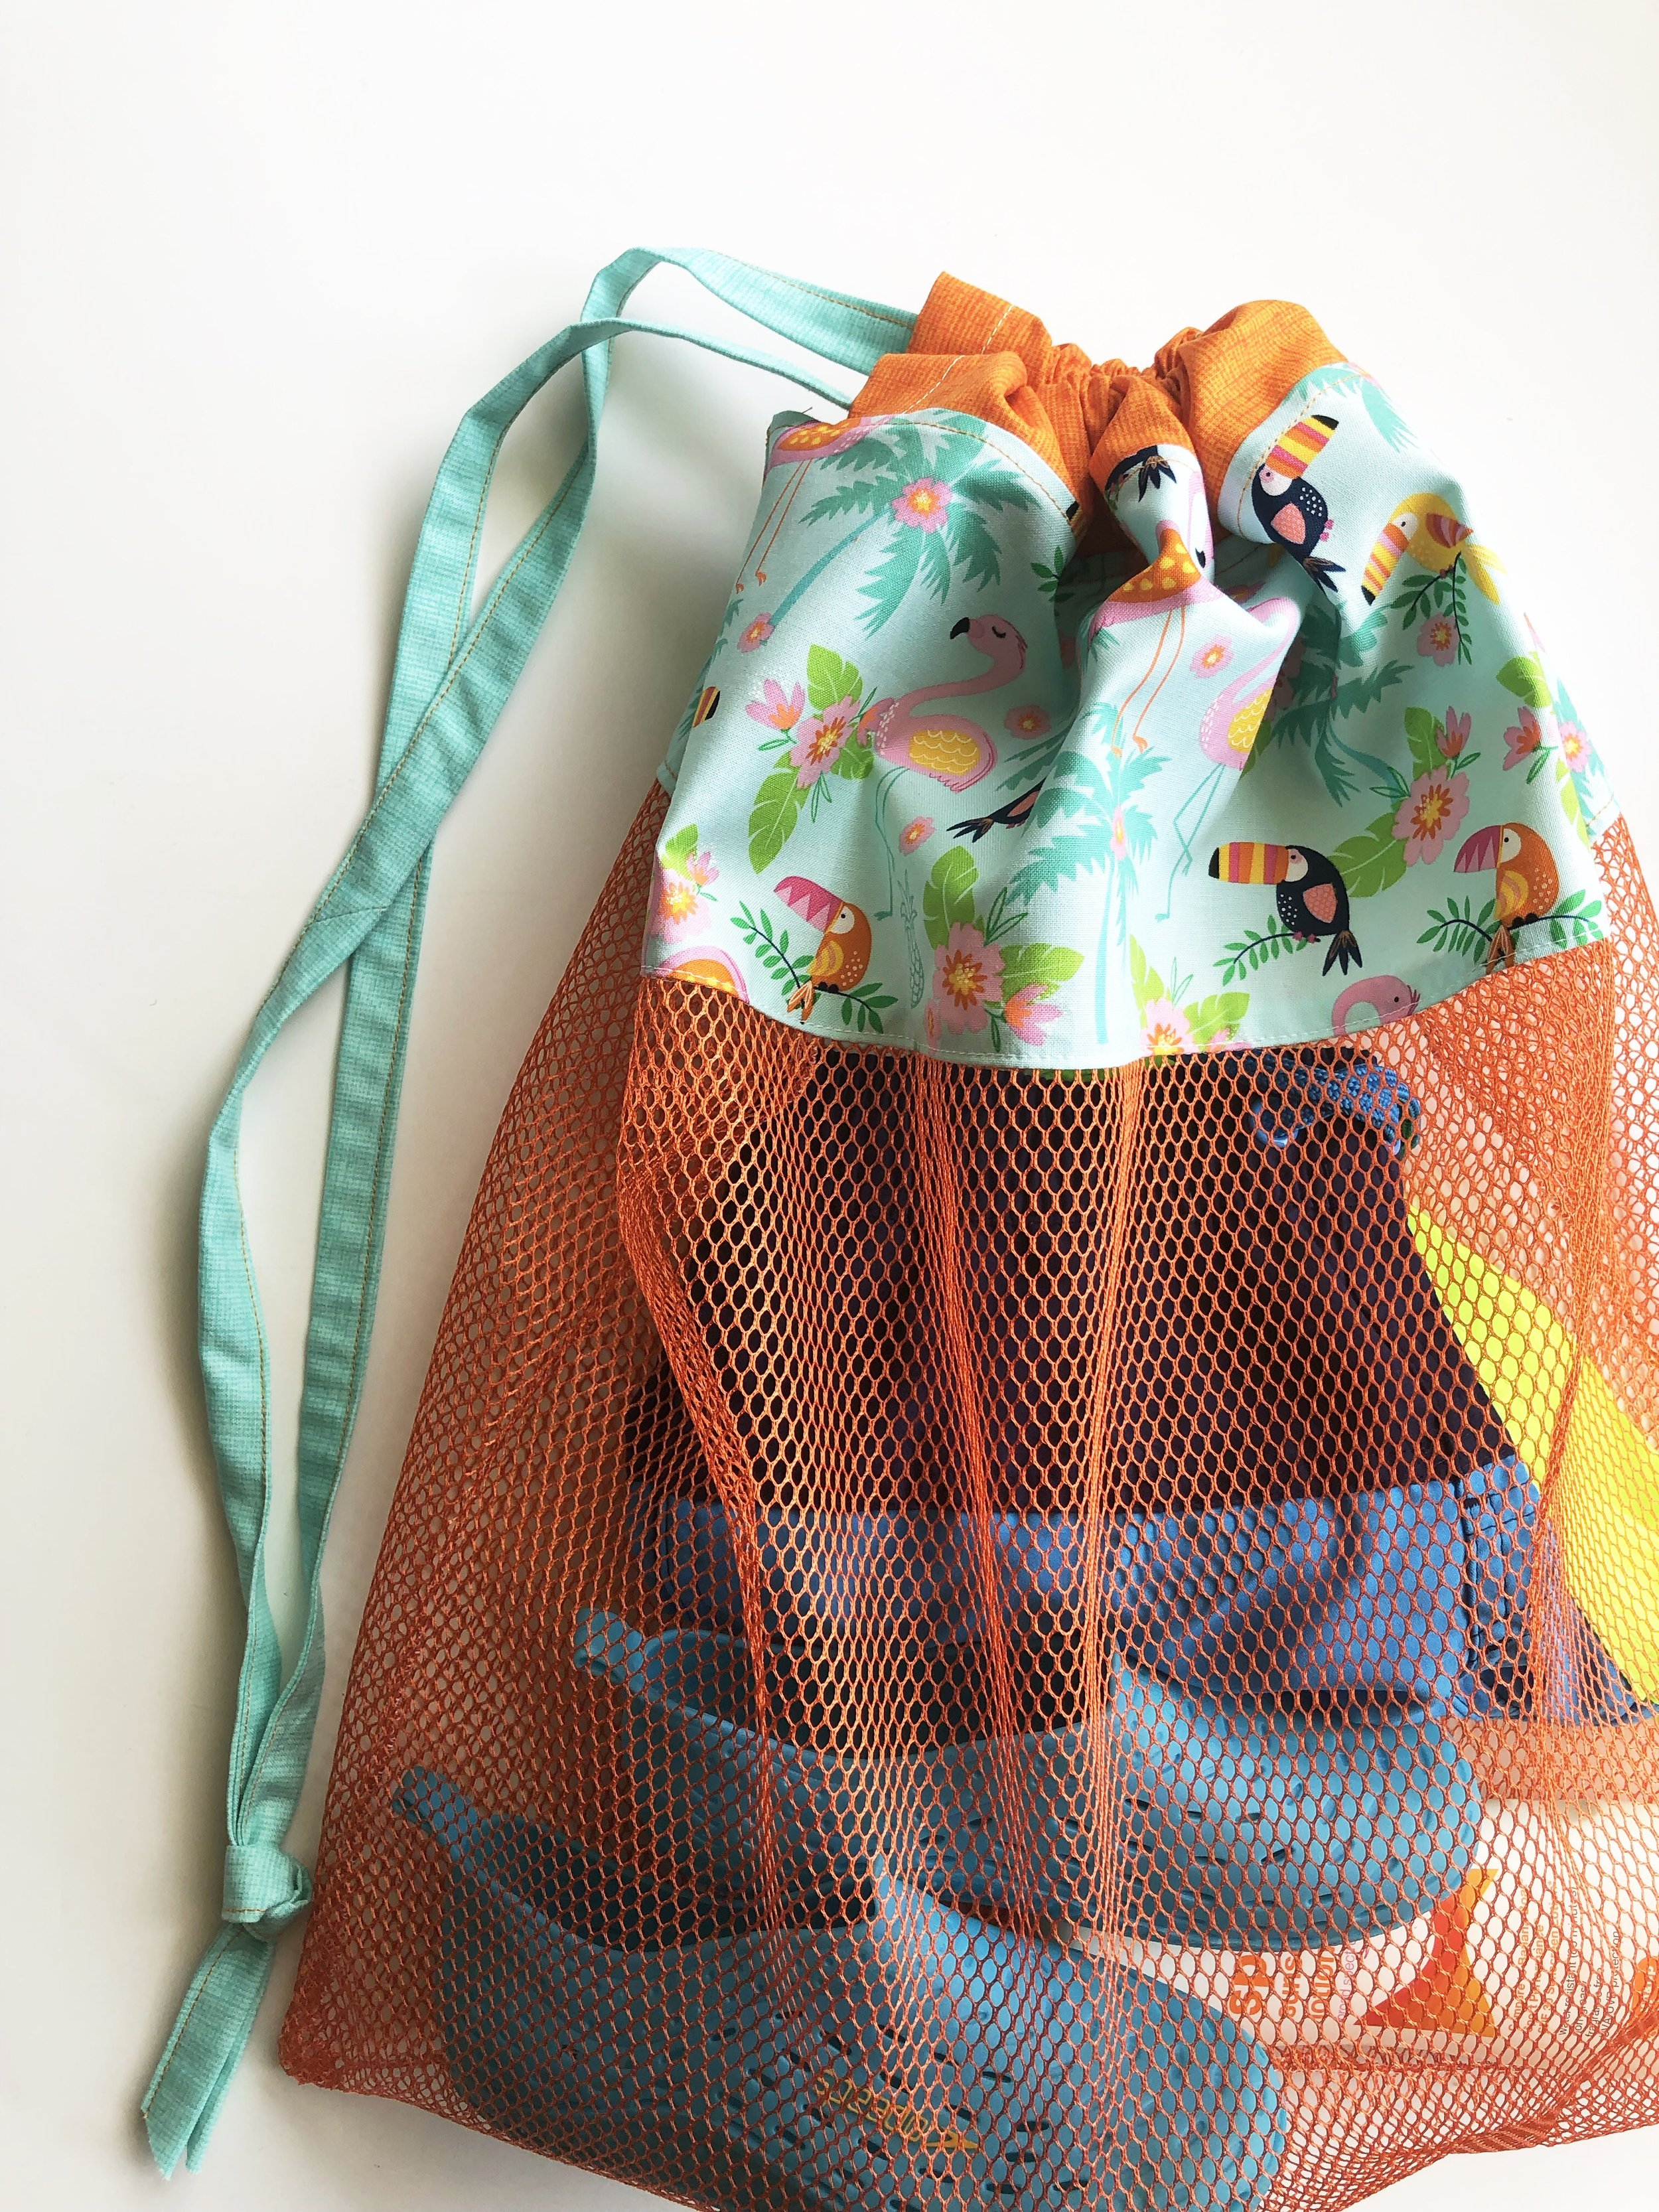 Mesh Beach Bag Tutorial - Modern Handcraft